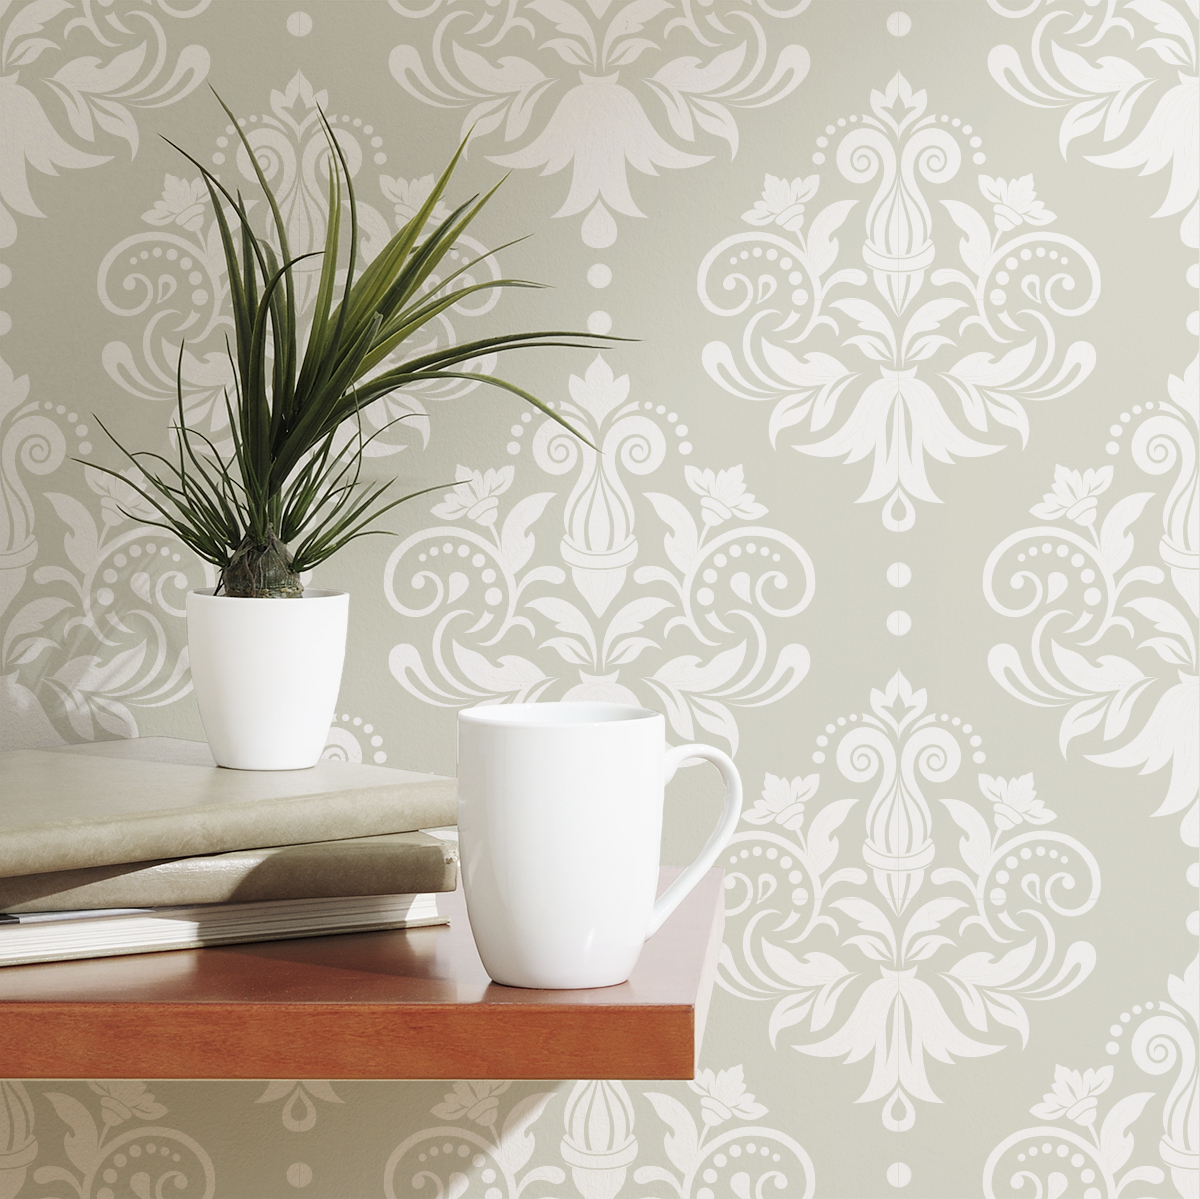 damask pattern removable wallpaper is perfect for renters apartments 1200x1199